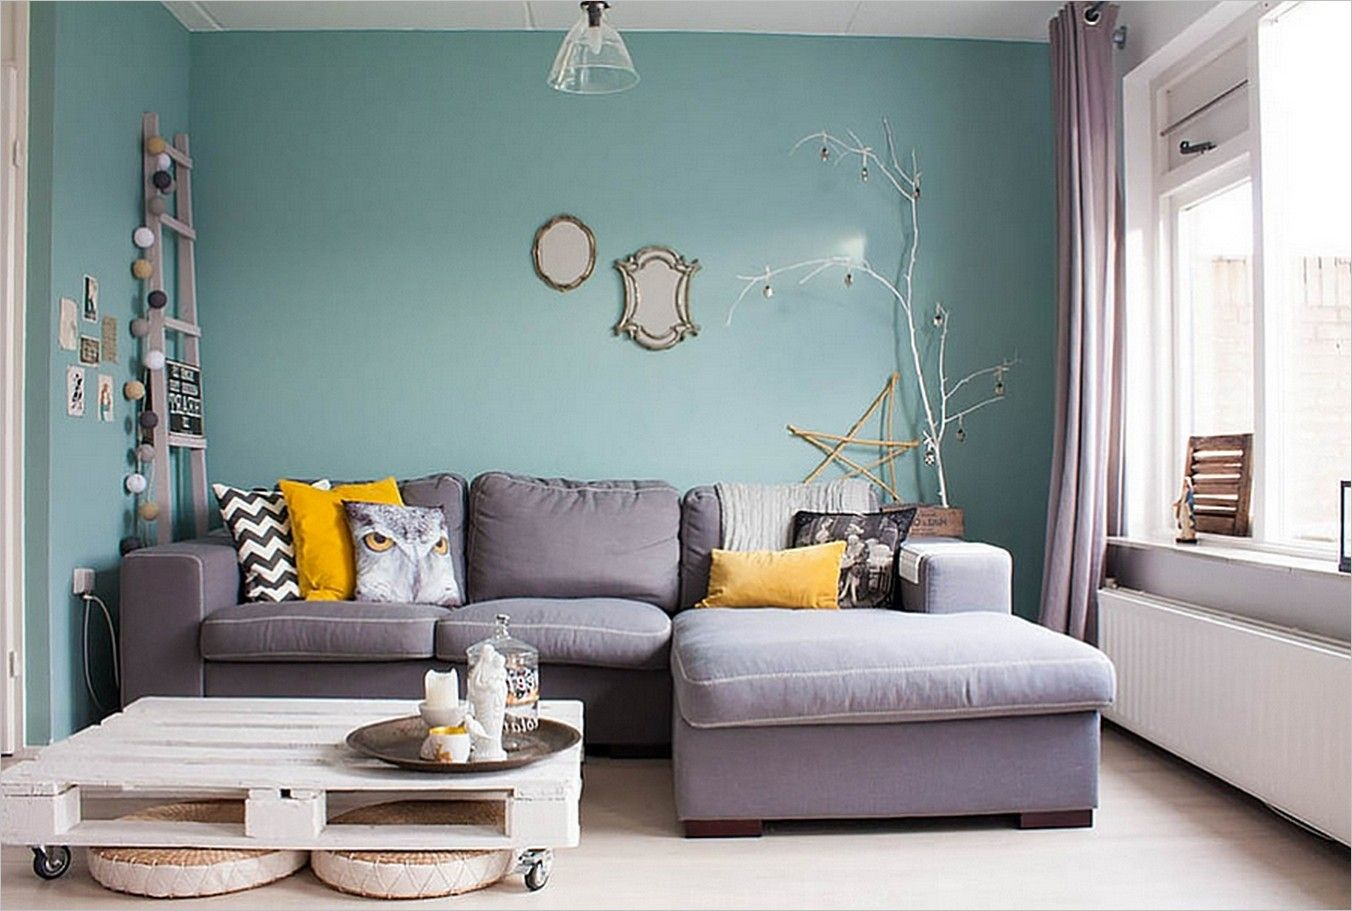 Lovely living room interior desig with blue wall paint for Color ideas for a living room